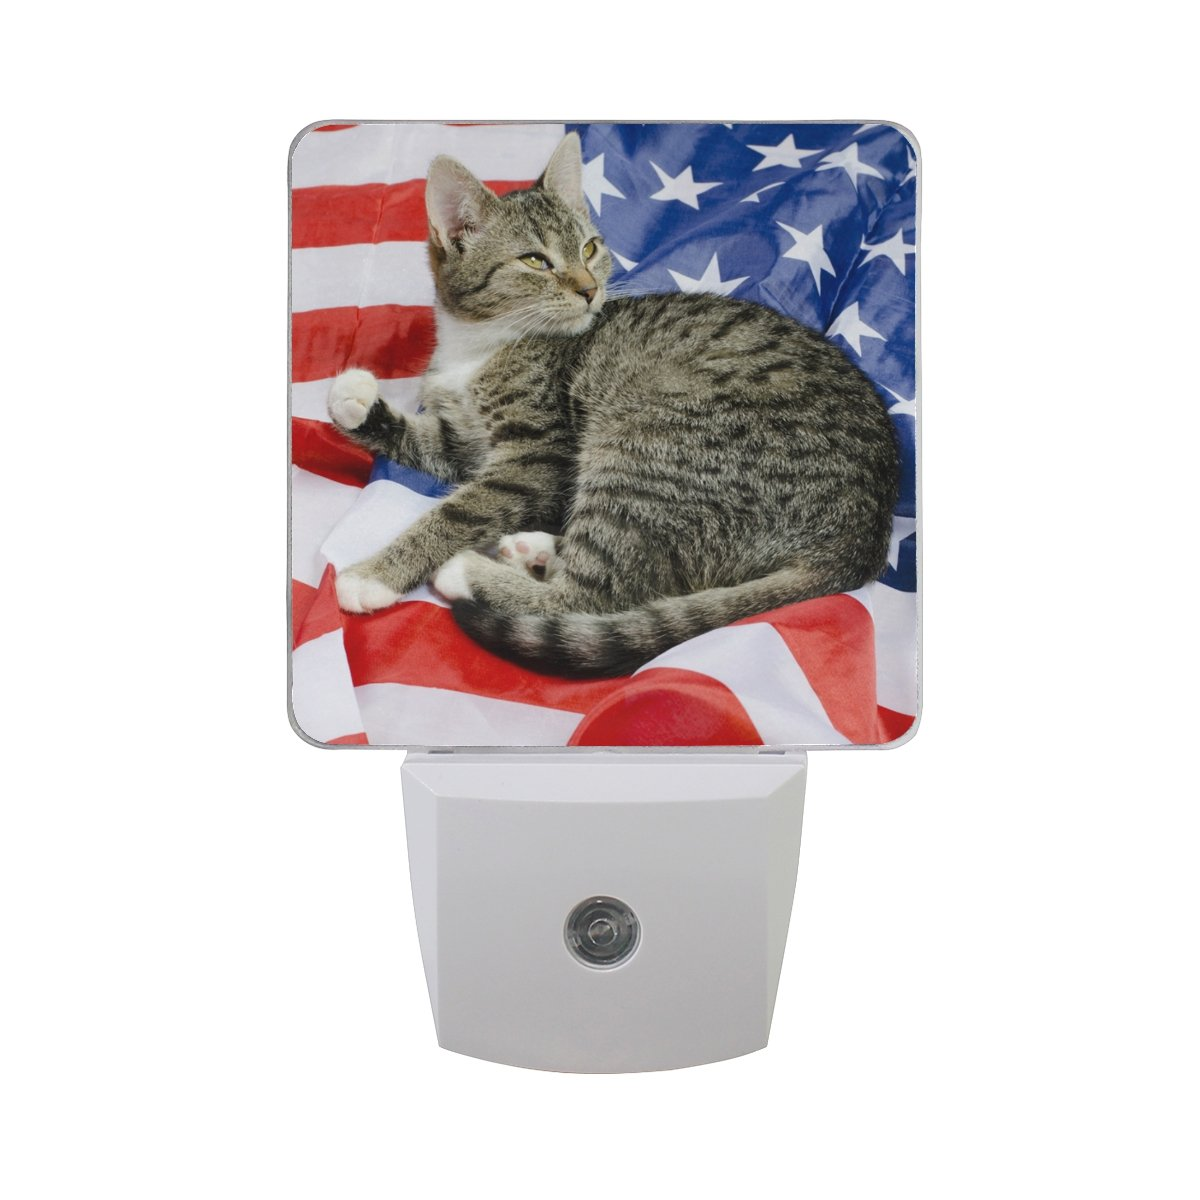 Naanle Set of 2 American Cat On USA Flag Auto Sensor LED Dusk To Dawn Night Light Plug In Indoor for Adults